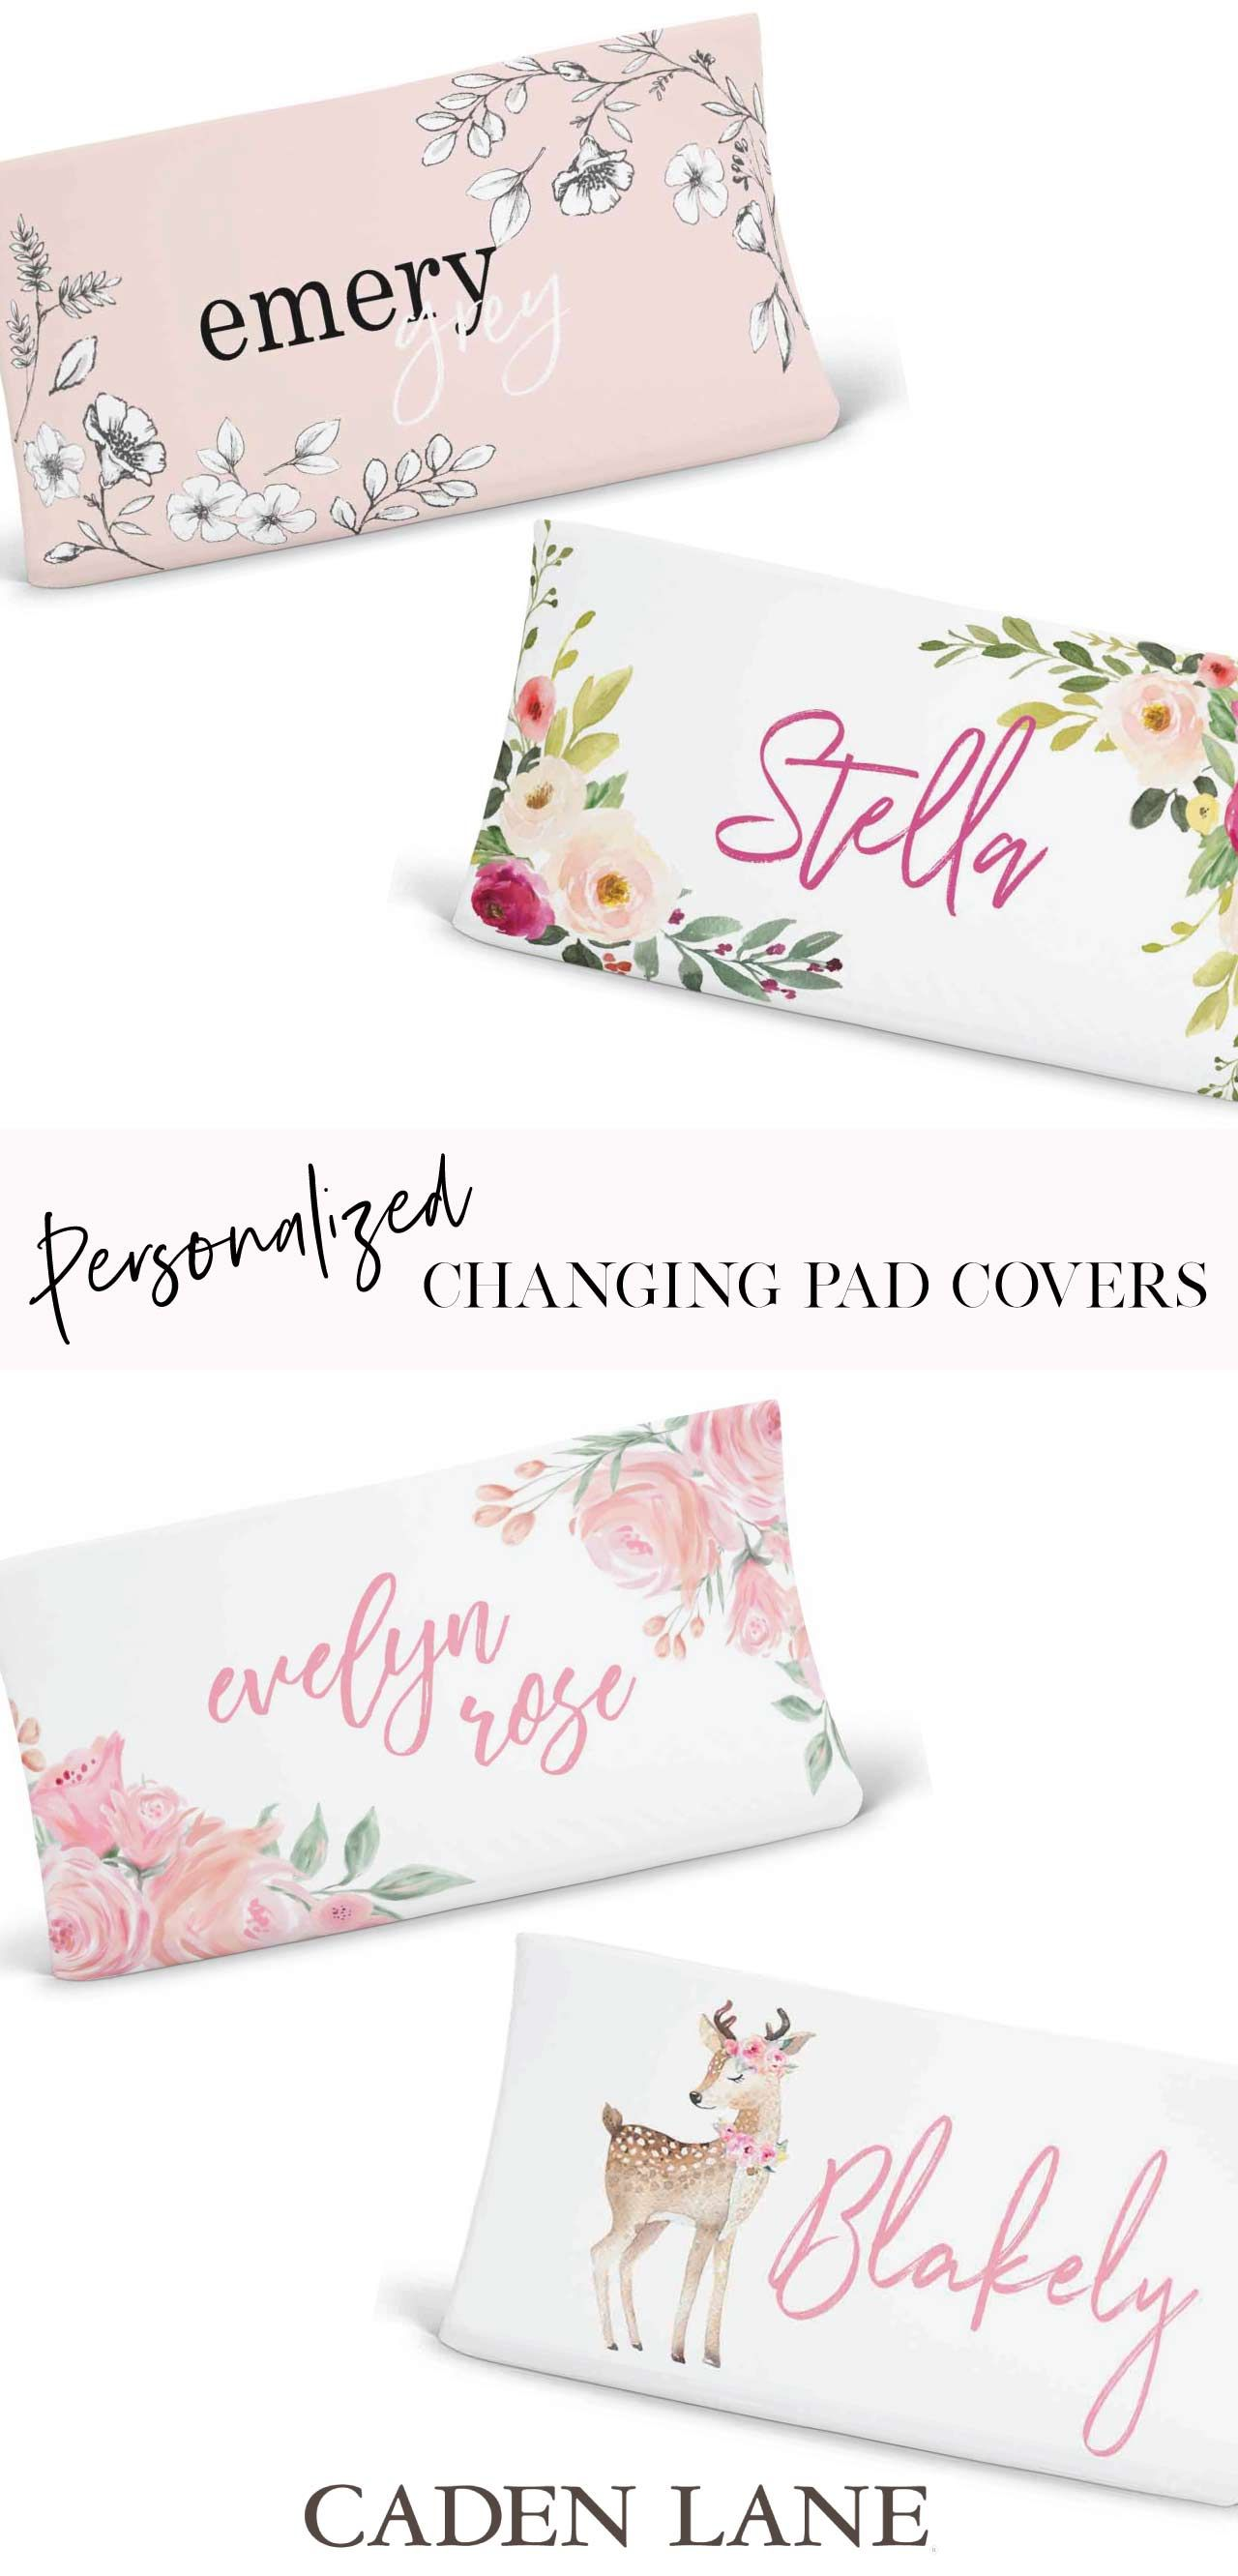 Bring some personalized style to your changing table with